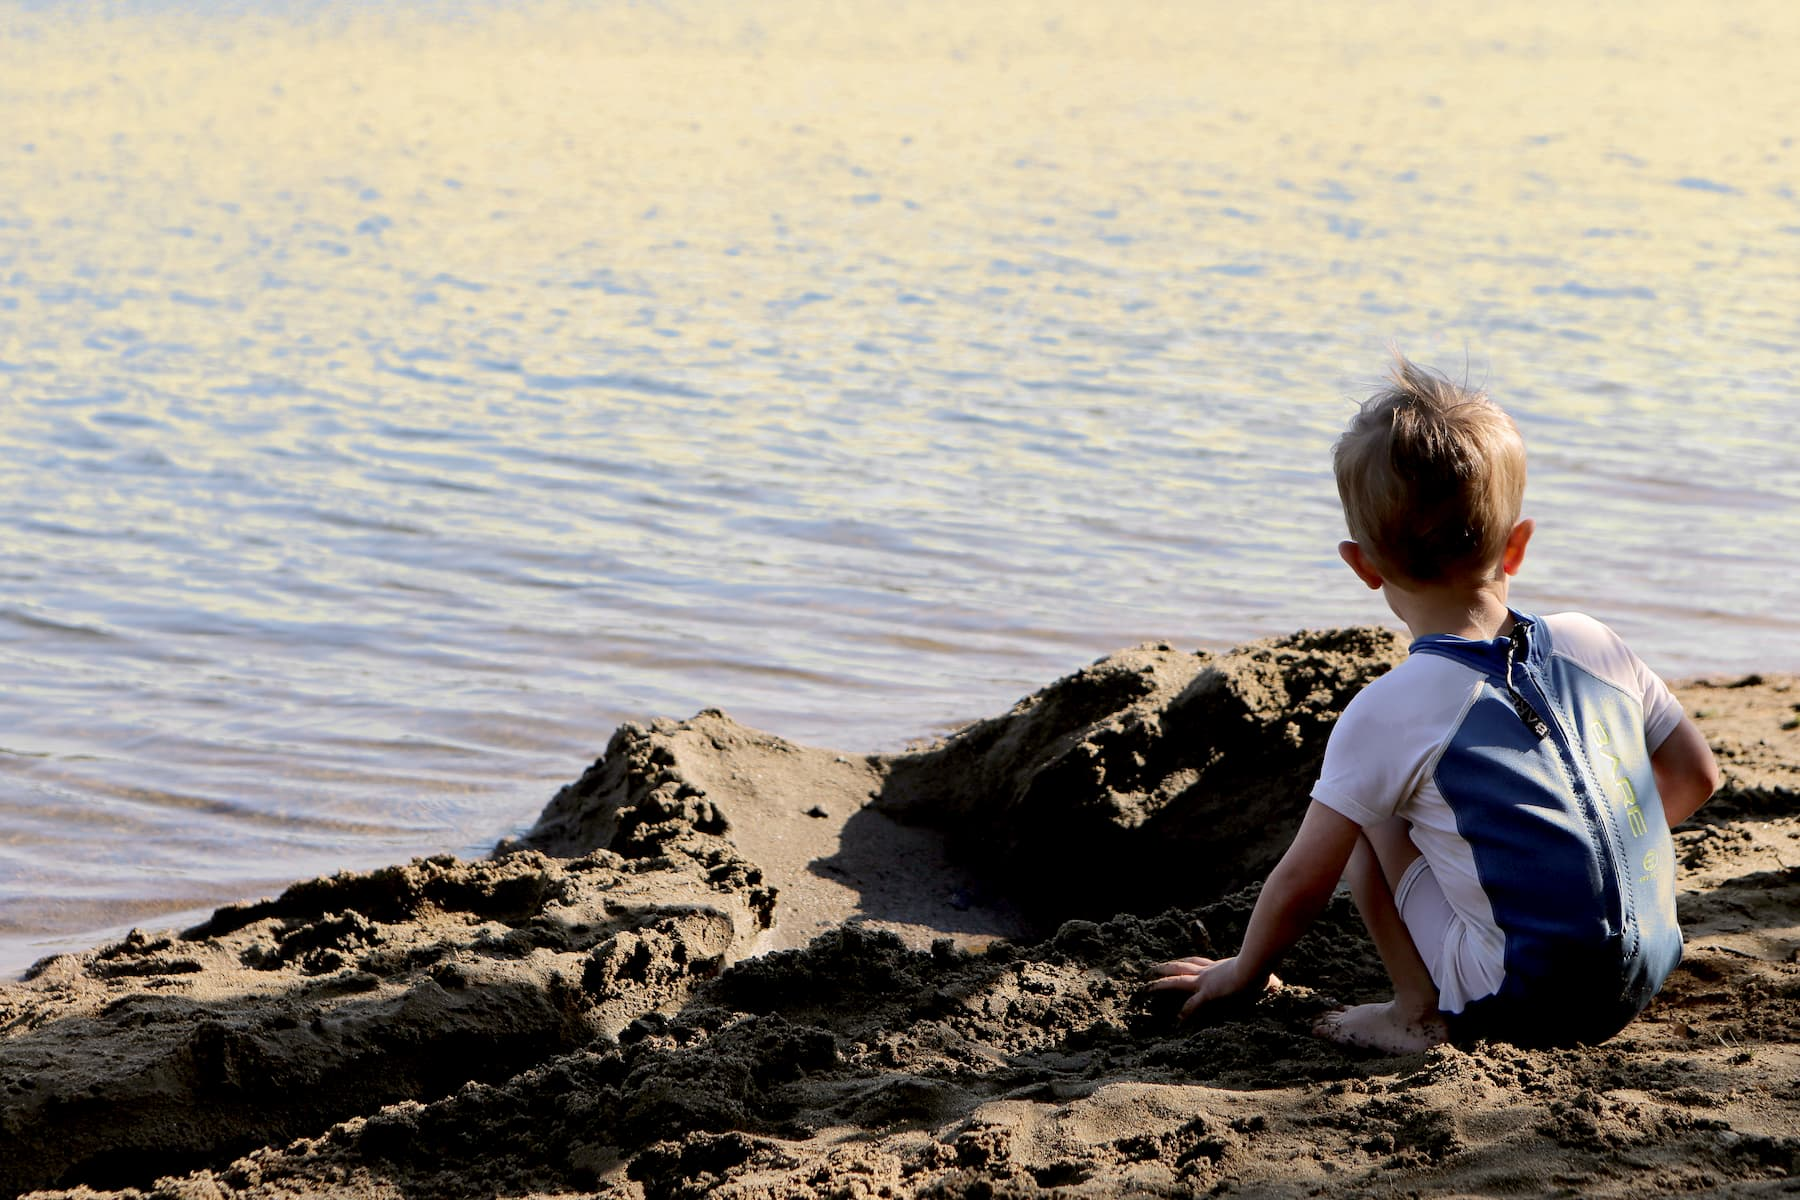 A barefoot boy with his hands in wet soil by the sea.